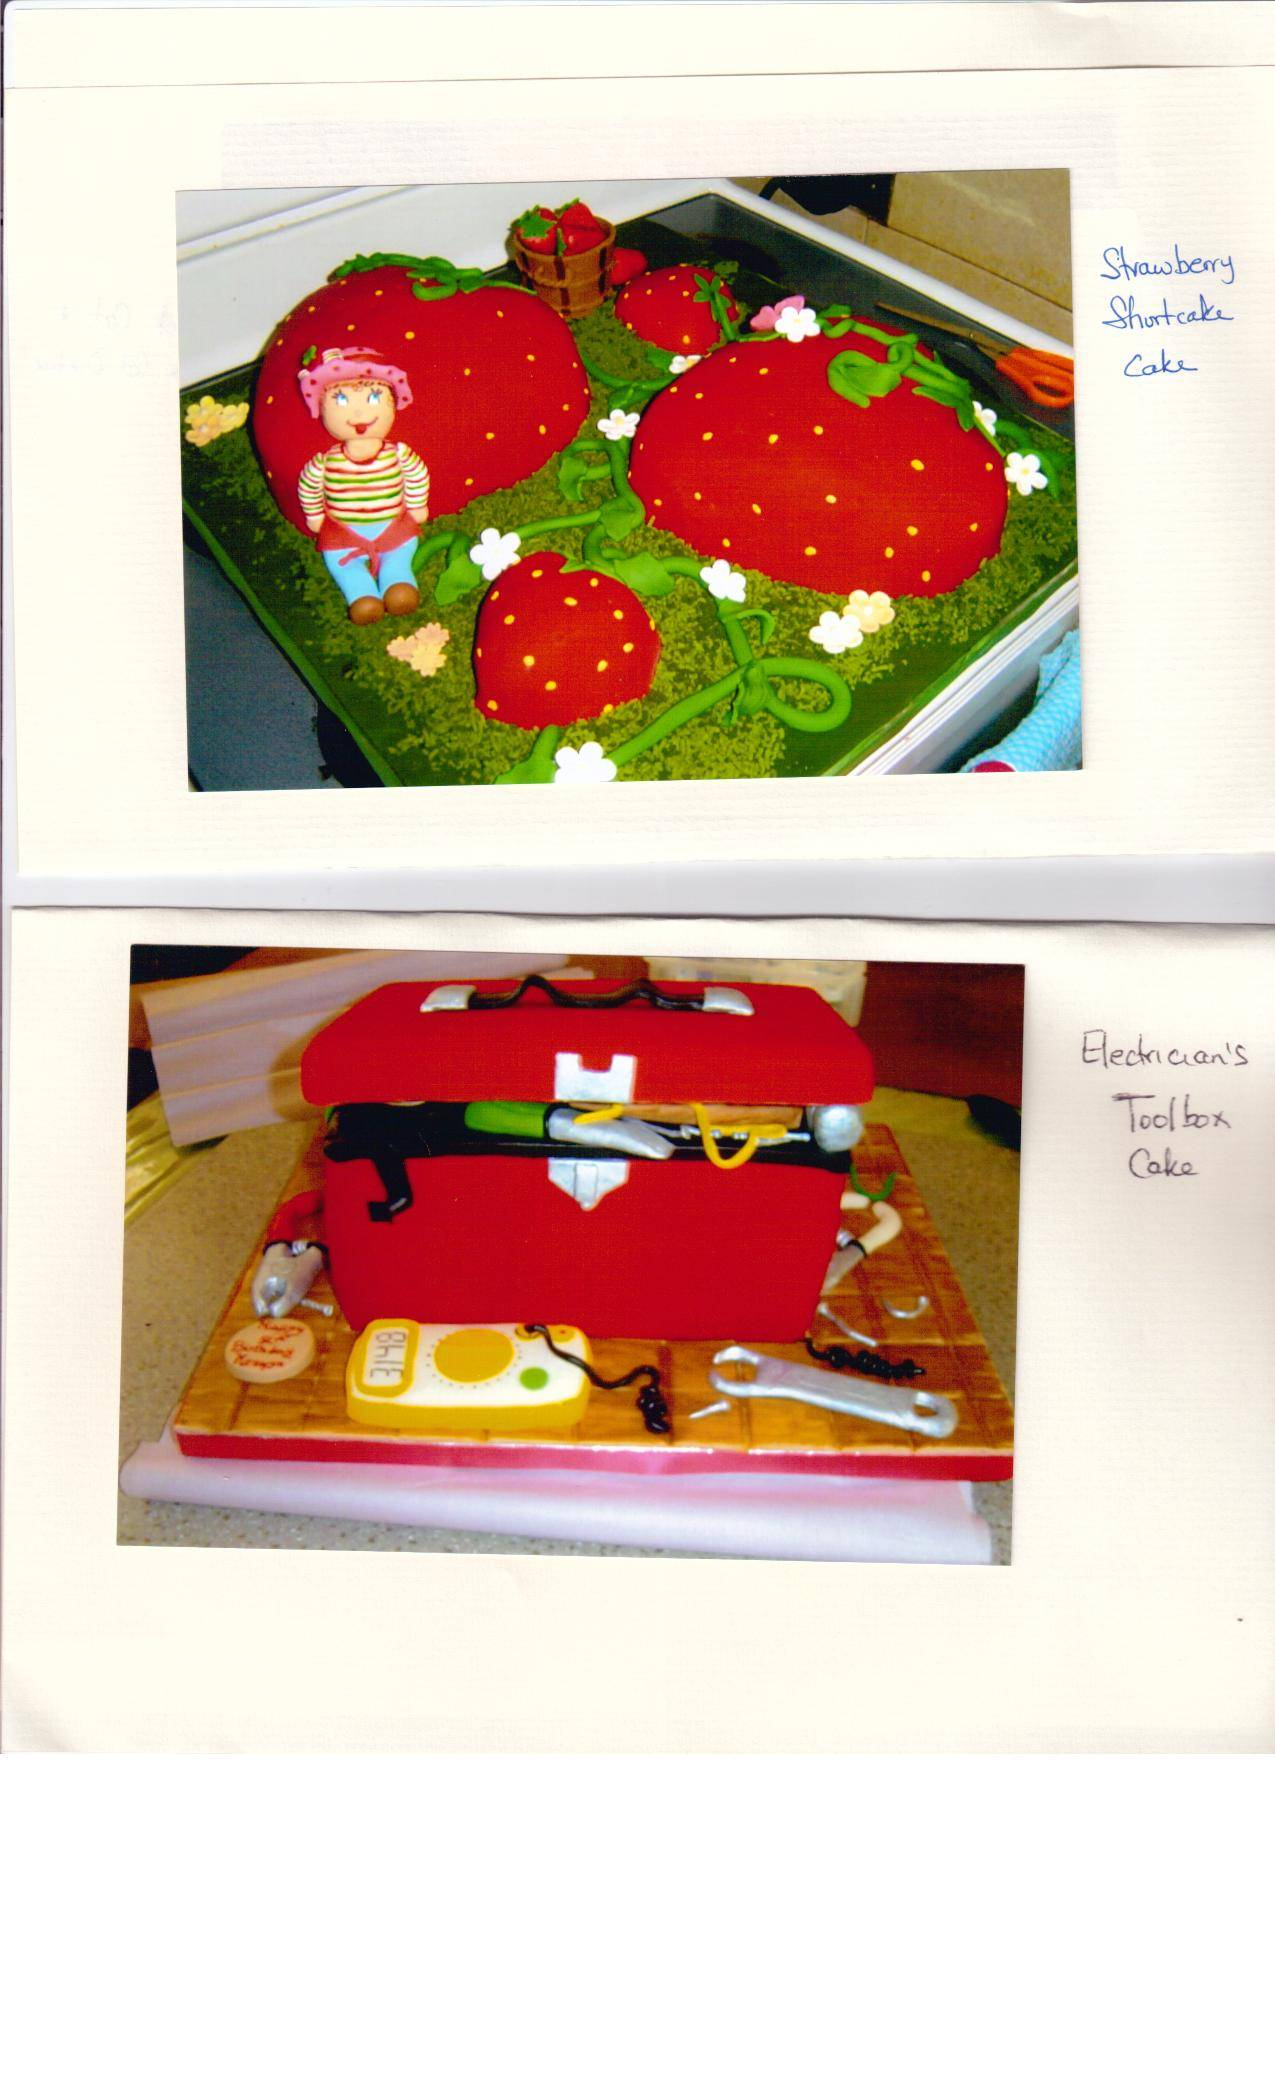 Cake 09A1 - Strawberry Shortcake & Electrician's ToolBox Cakes